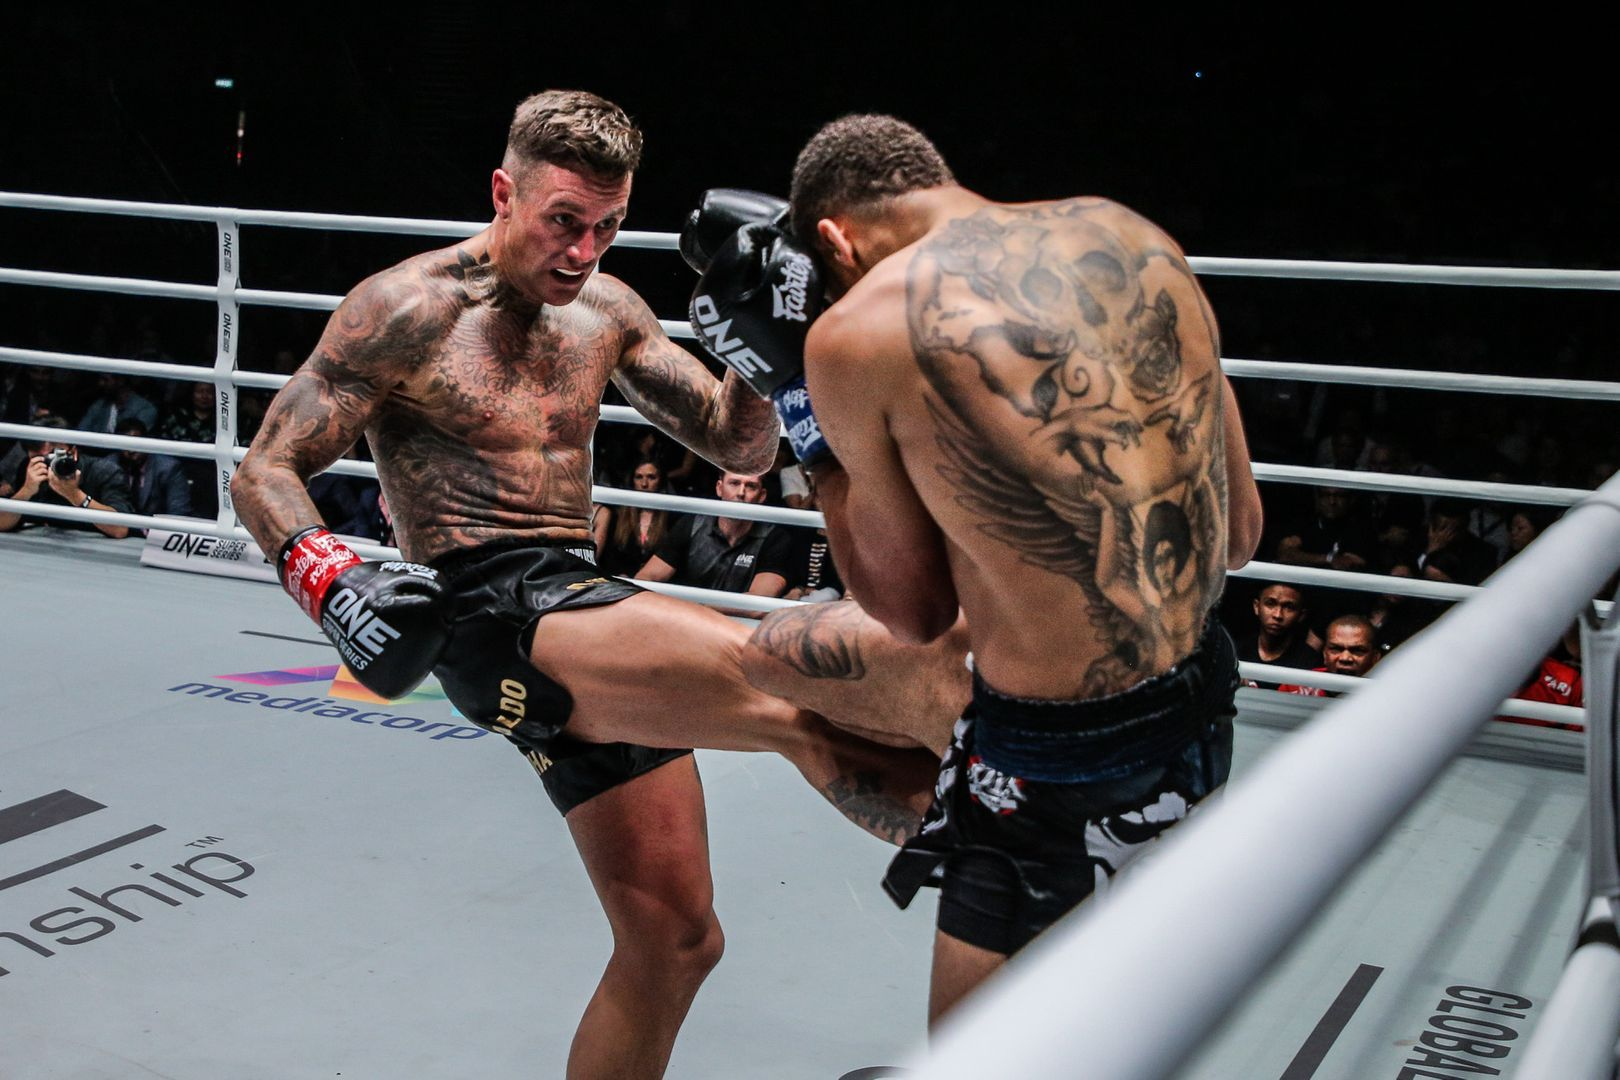 Dutch kickboxing legend Nieky Holzken cracks Regian Eersel with a kick at ONE: ENTER THE DRAGON in May 2018.